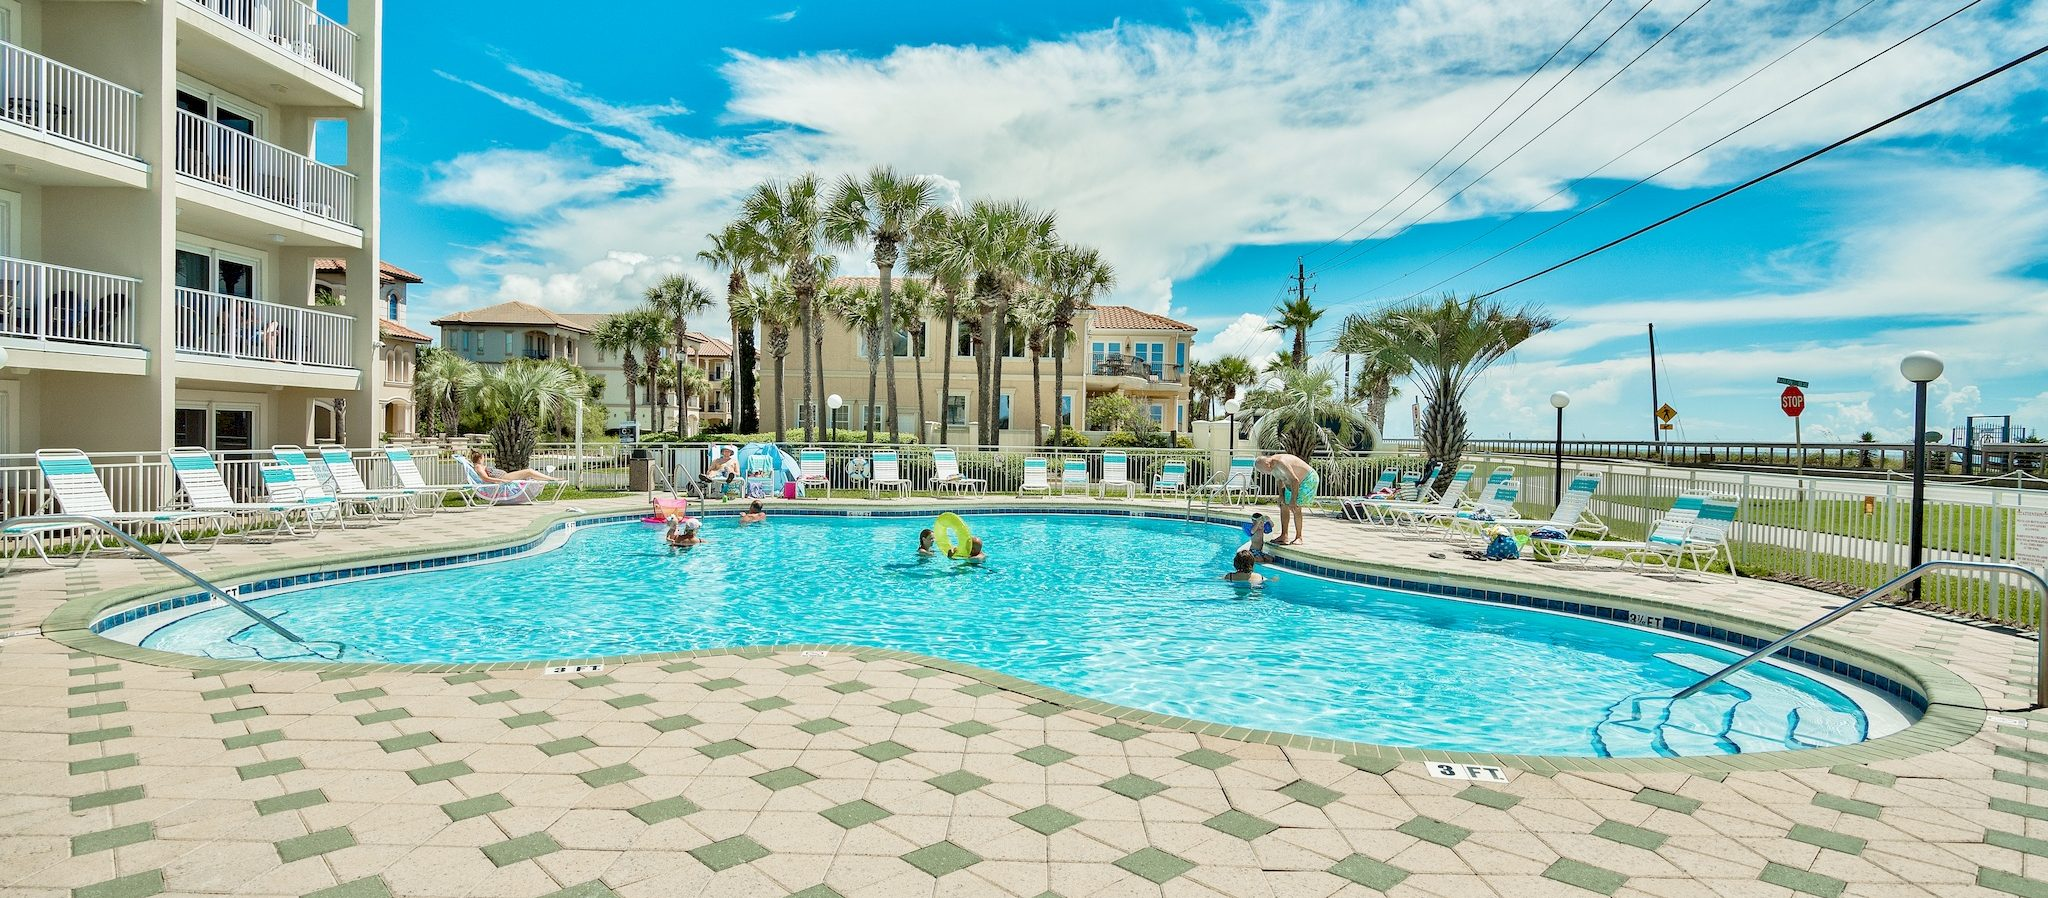 Find places to stay in Destin with a pool.